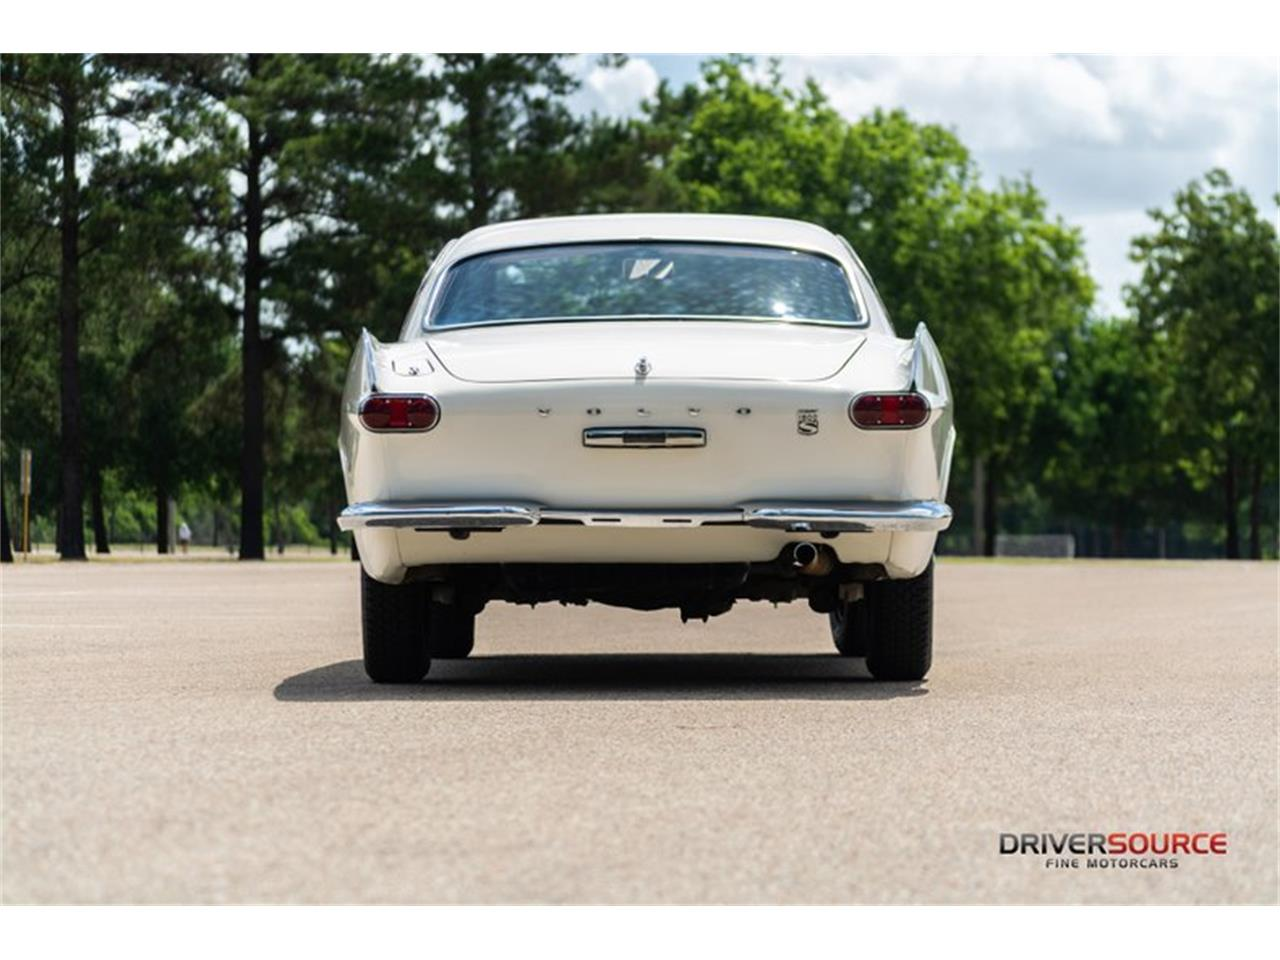 Large Picture of 1964 Volvo P1800E located in Houston Texas Offered by Driversource - NNM3